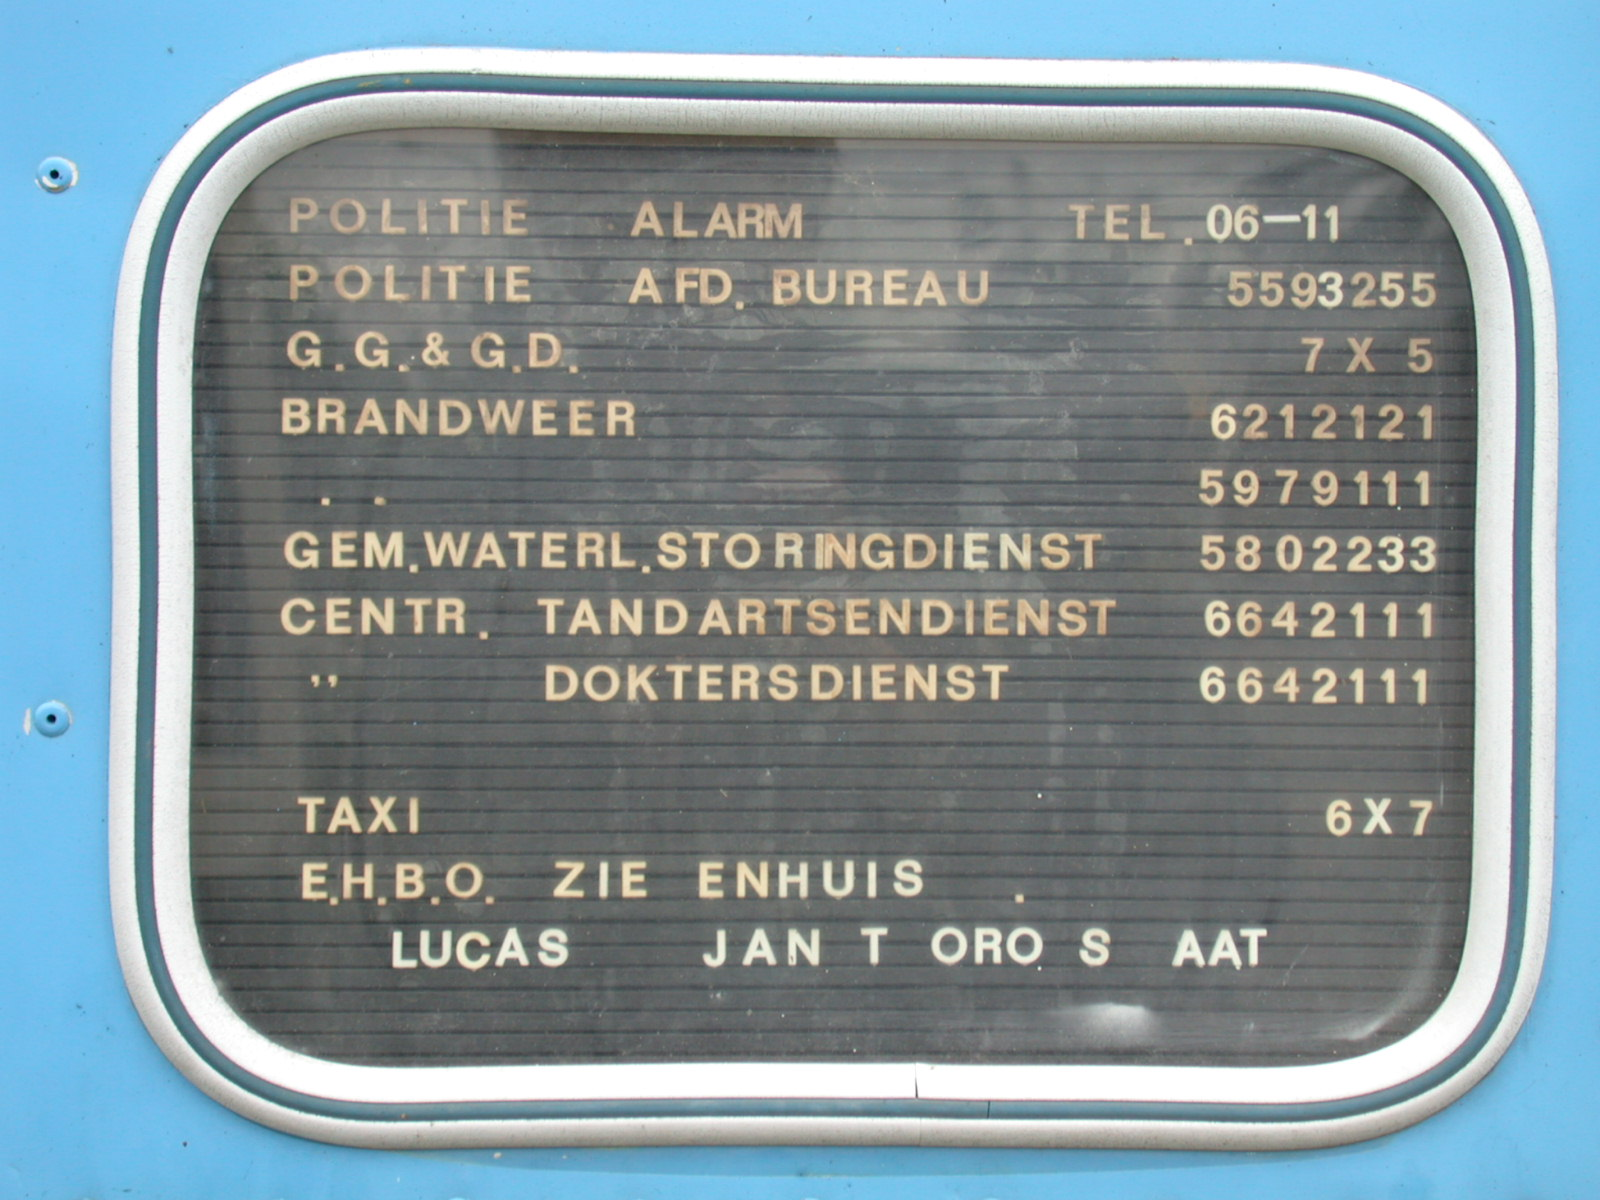 notice board noticeboard letter politie police pinned up plaque placard black and white